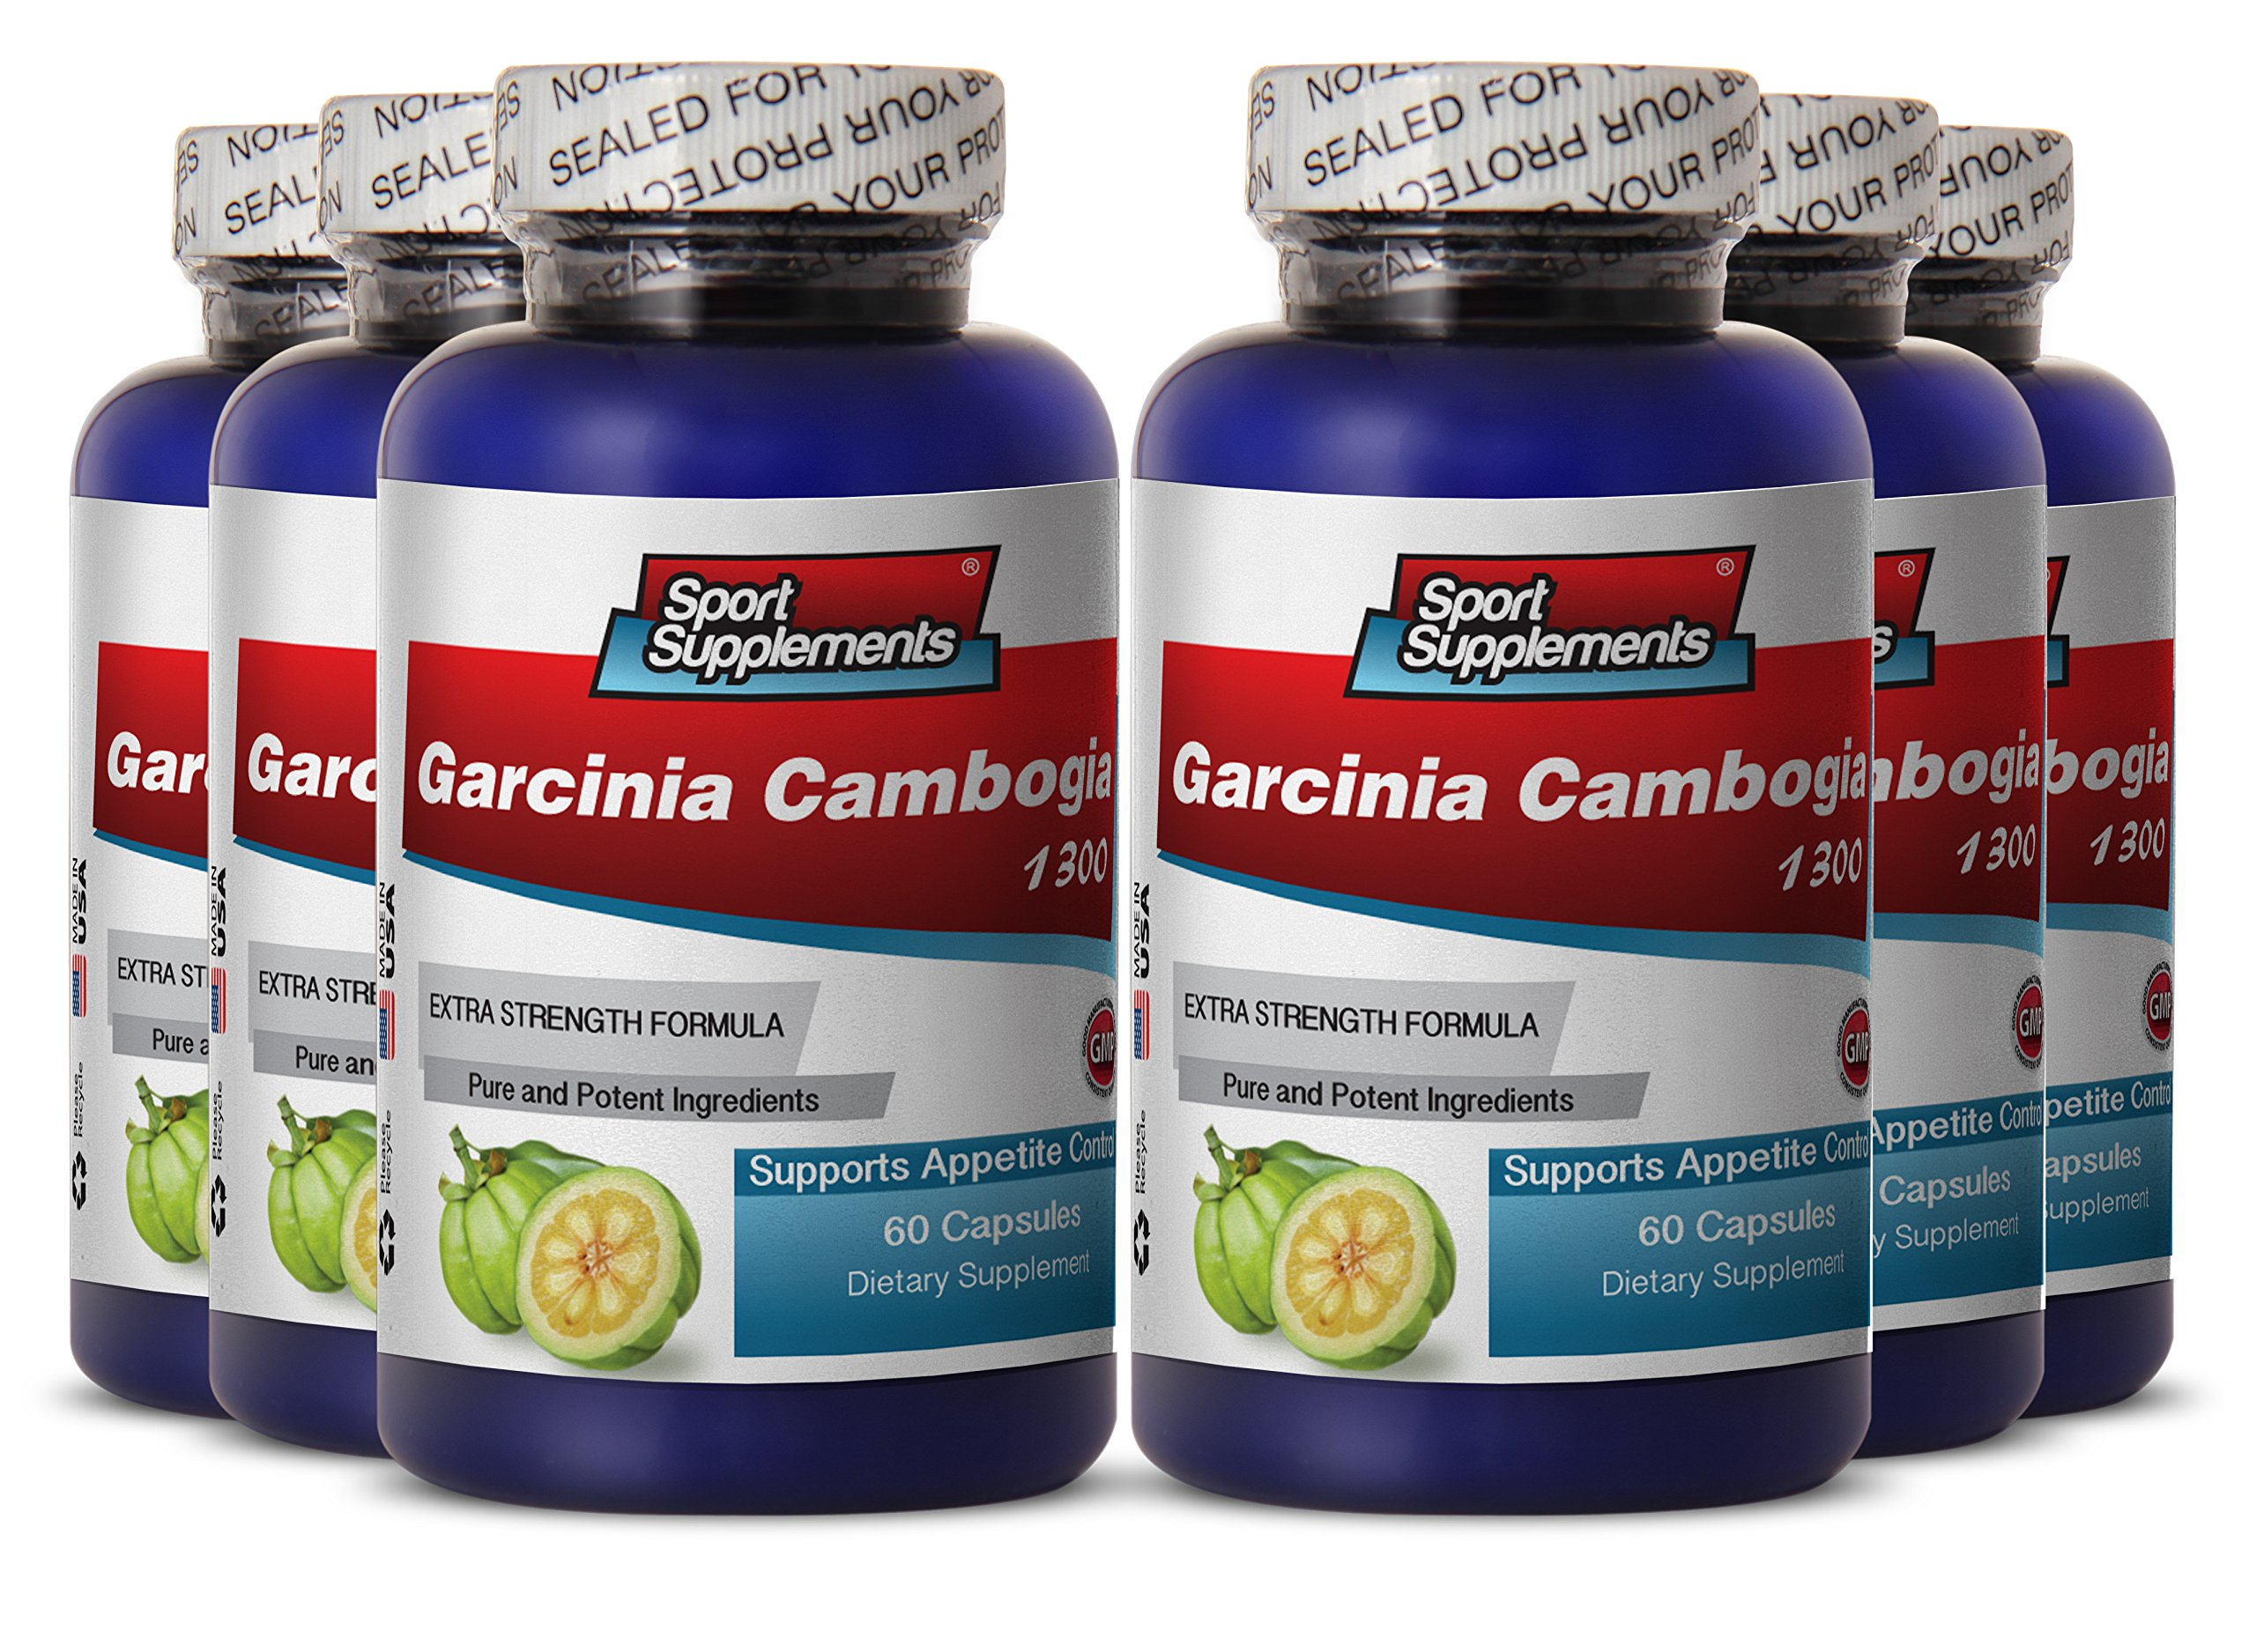 Garcinia pills - Garcinia Cambogia 1300 - Weight loss fat burner for women (6 Bottles 360 Capsules)